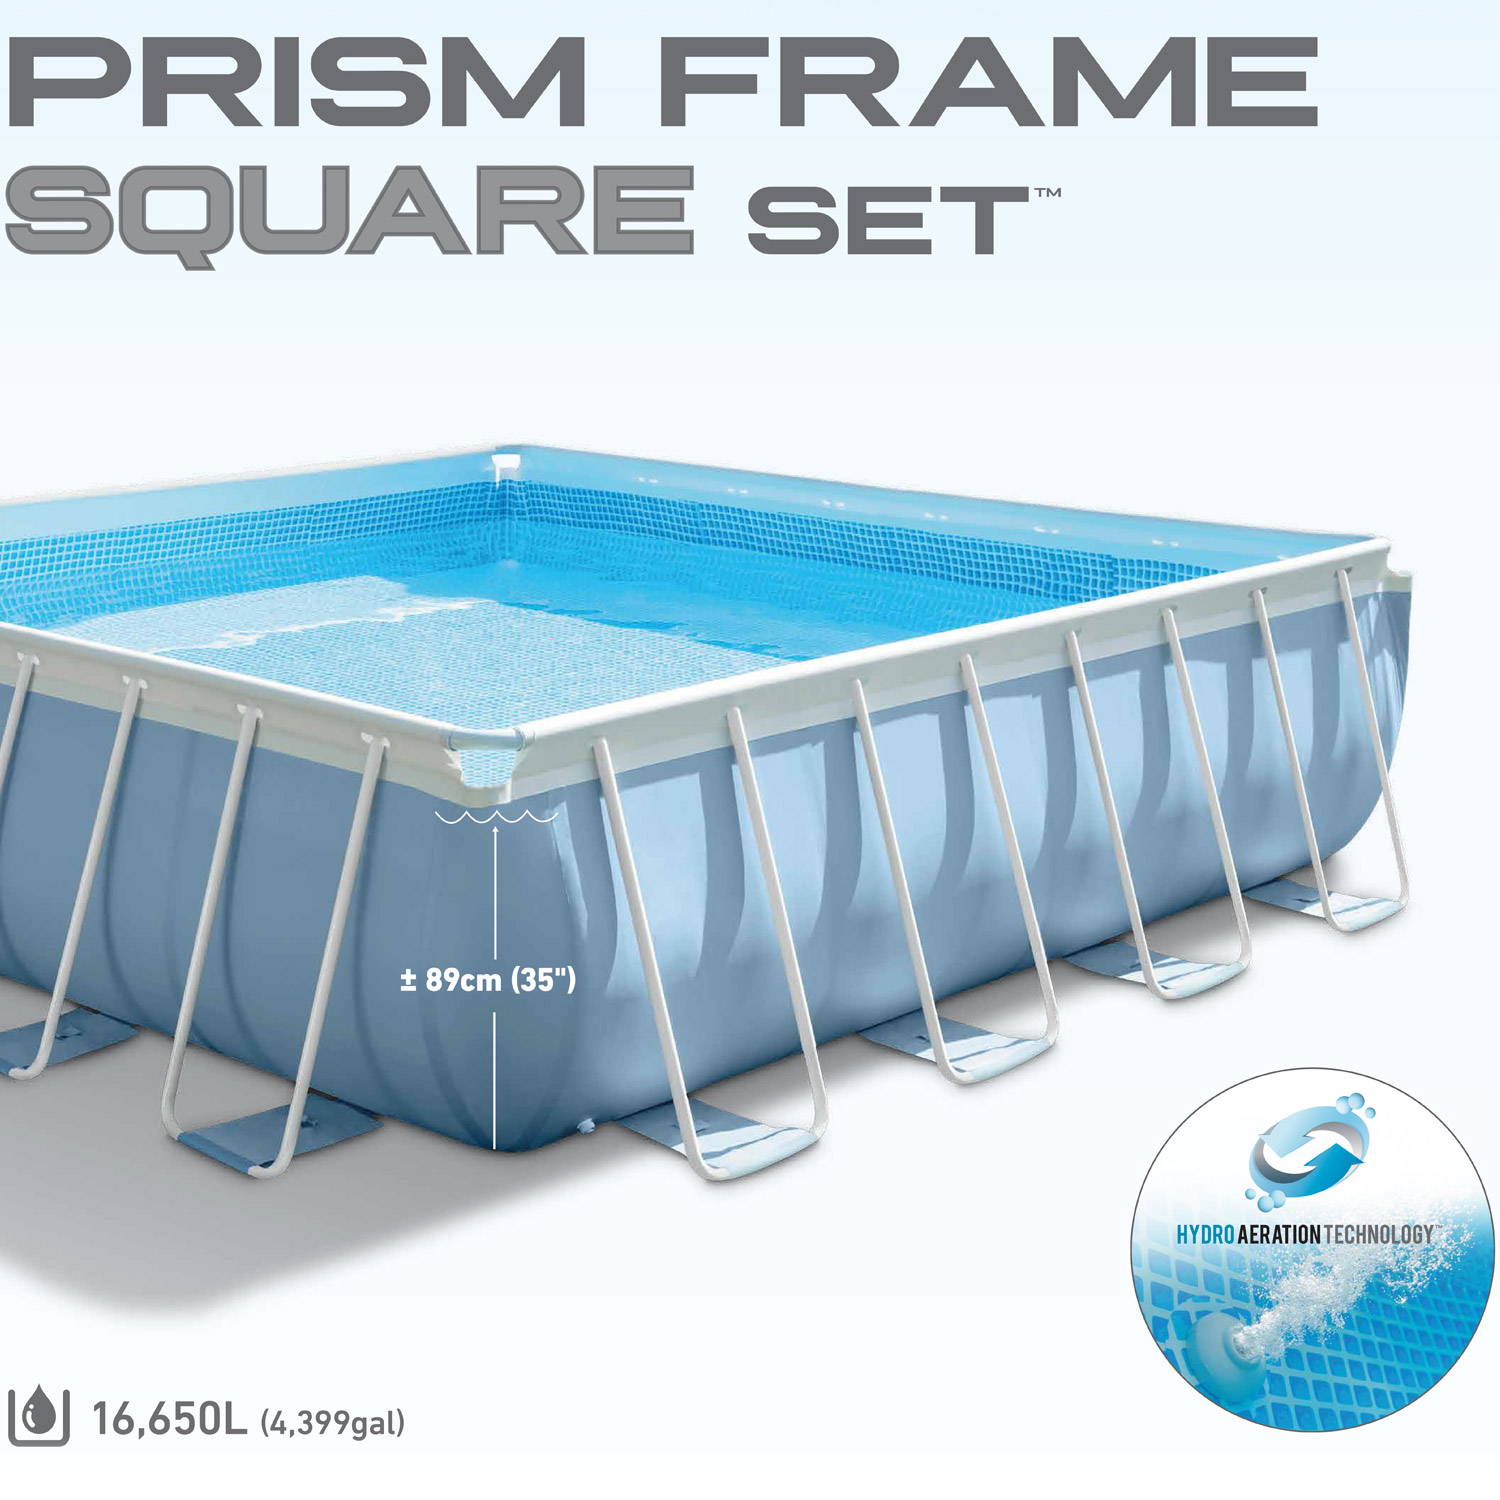 intex frame pool set prism 427x427x107 cm pumpe schwimmbad. Black Bedroom Furniture Sets. Home Design Ideas